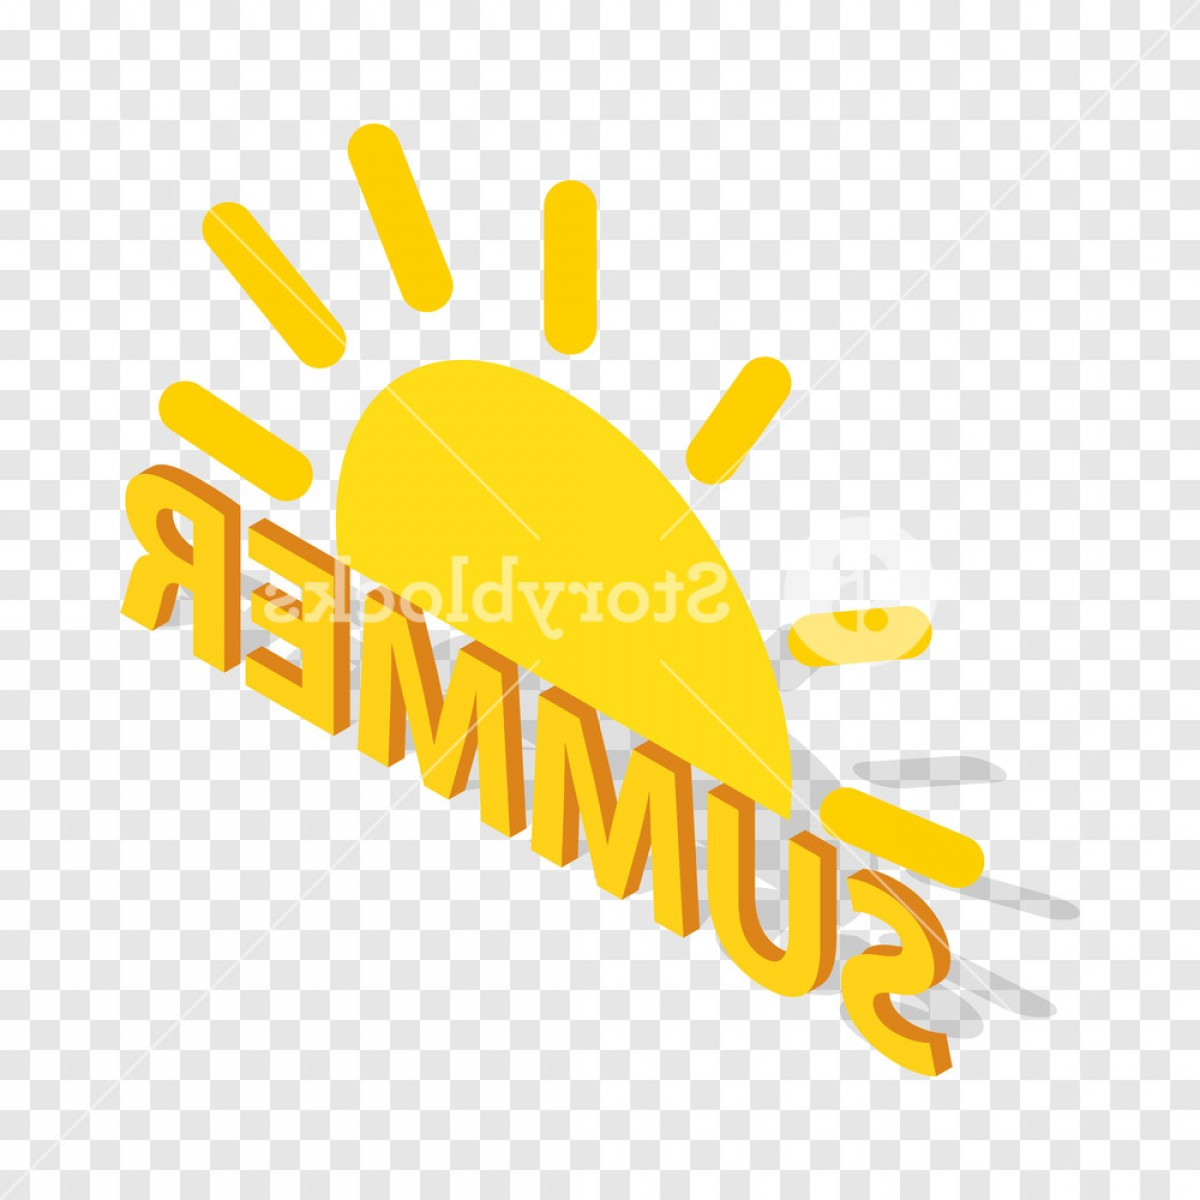 Summer Transparent Vector: Sun And Summer Isometric Icon D On A Transparent Background Vector Illustration Bugelmmxmjimycc